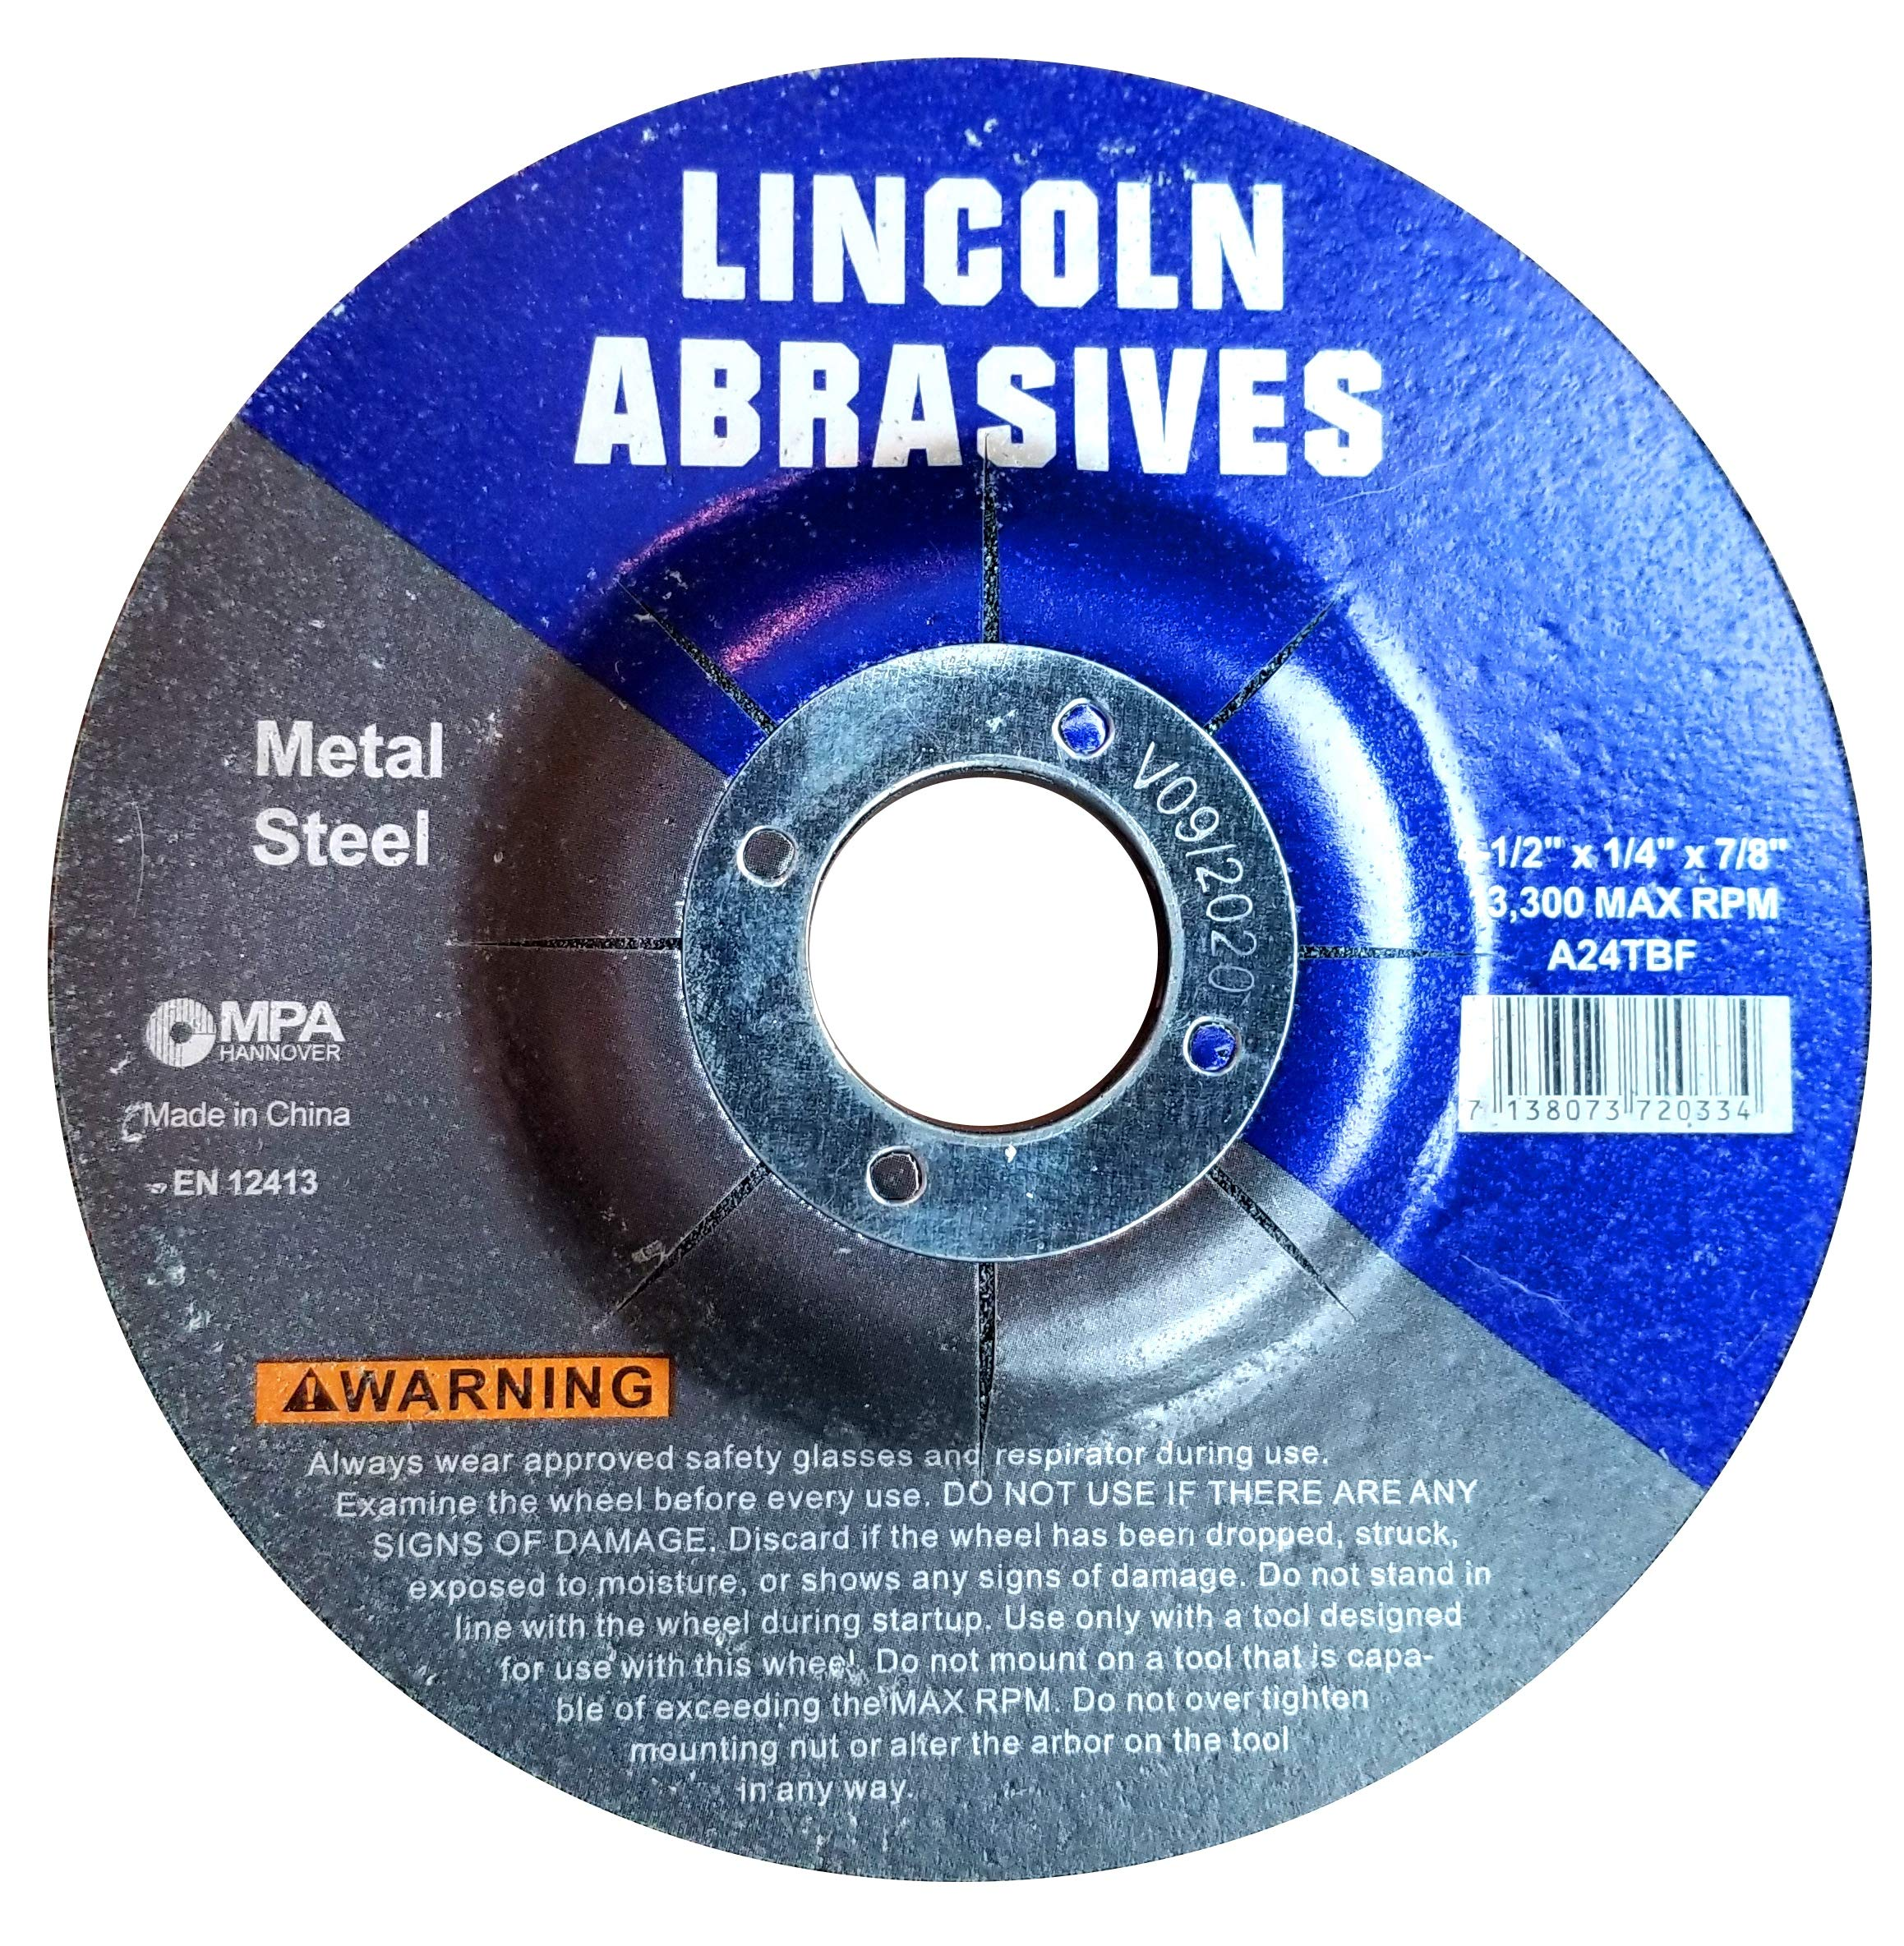 100 Pack Grinding Wheels 4.5'' x 1/4'' x 7/8'' For Metal by Lincoln Abrasives